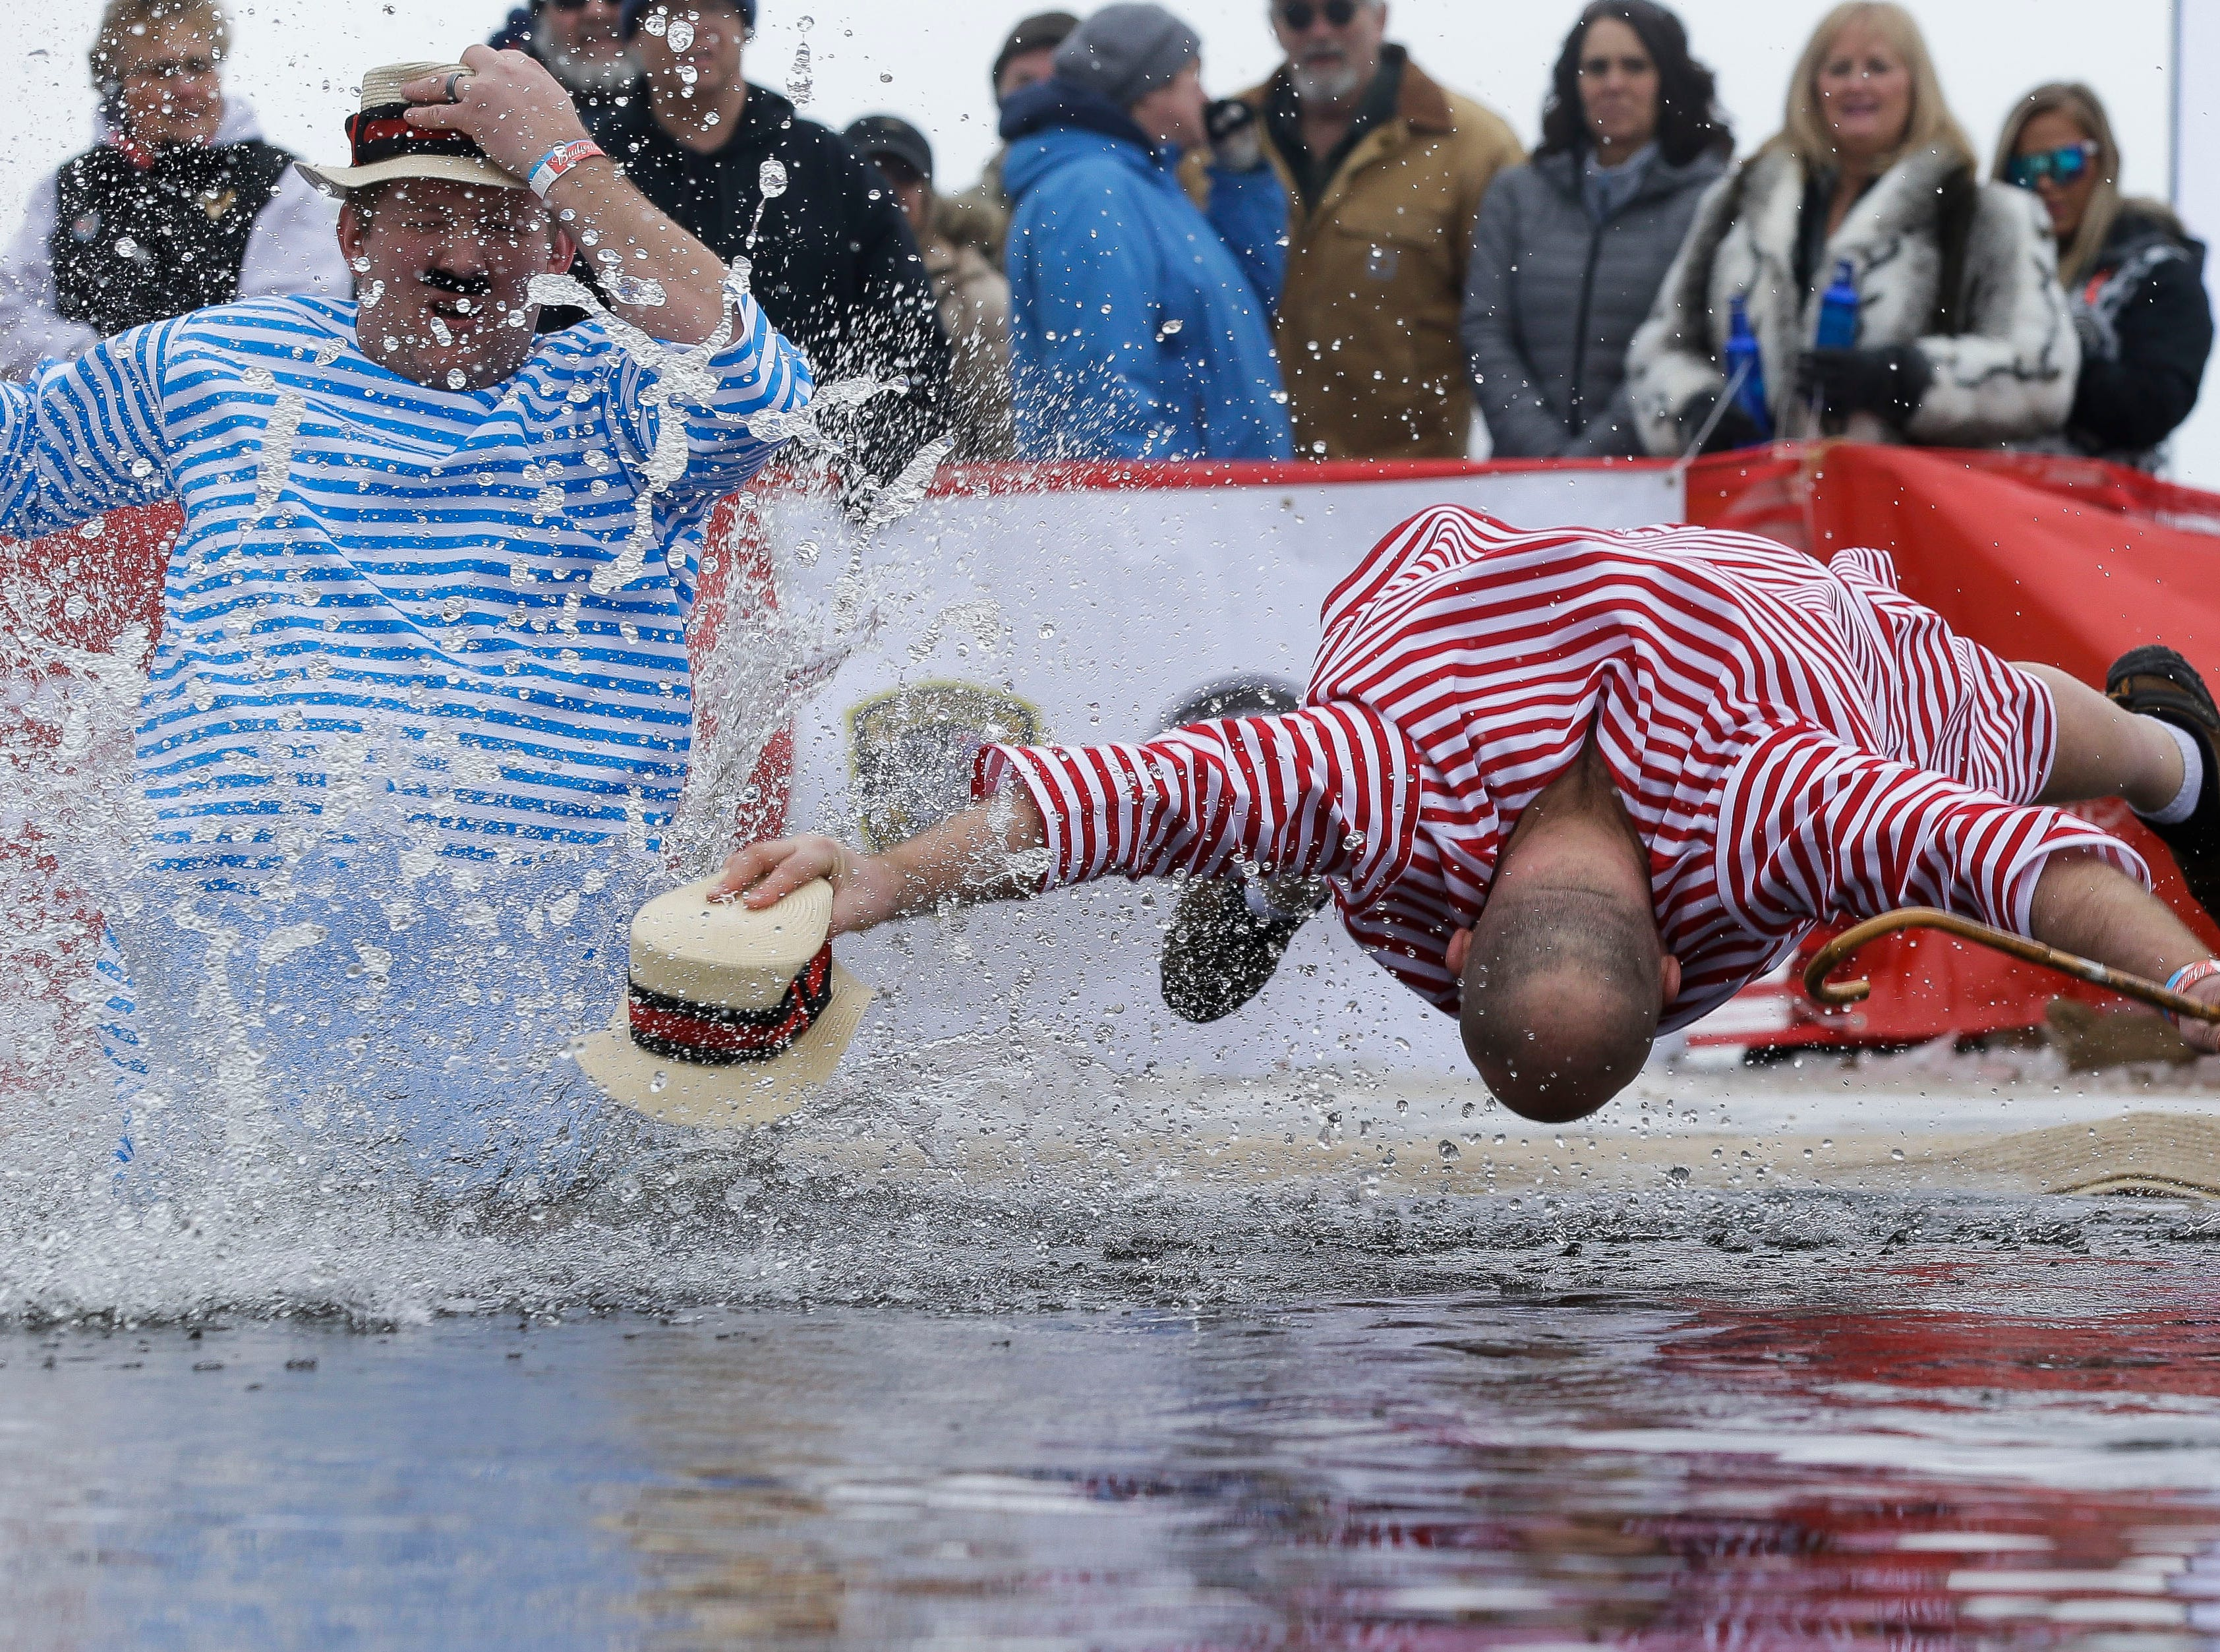 Participants take the polar plunge on Saturday, February 2, 2019, at Anchor Bay Bar and Grill in Biron, Wis. The event was one of many polar plunges held across the state as fundraisers for Special Olympics Wisconsin.Tork Mason/USA TODAY NETWORK-Wisconsin